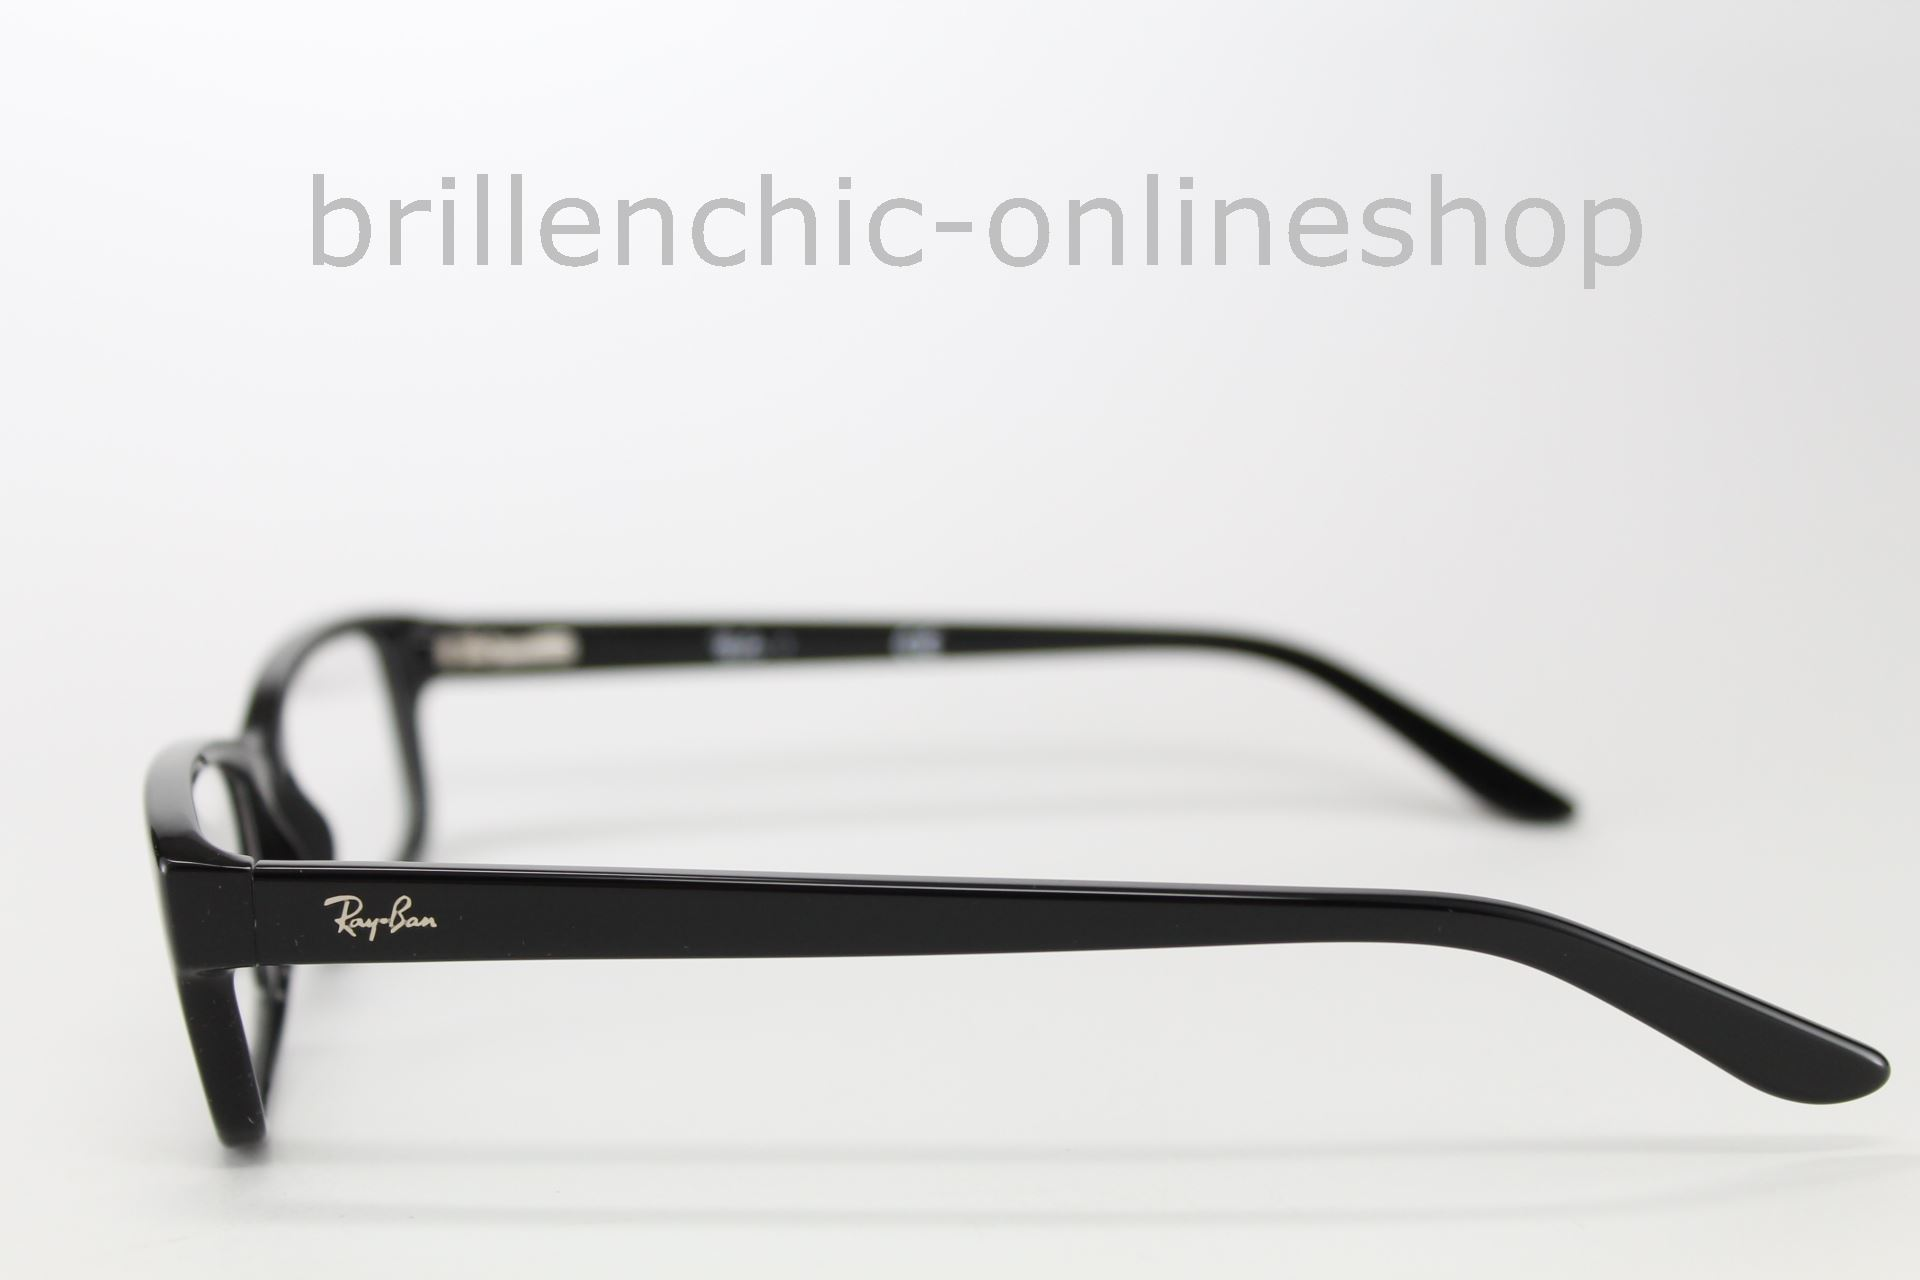 0acfd320c1 Brillenchic-onlineshop in Berlin - Ray Ban RB 5187 2000